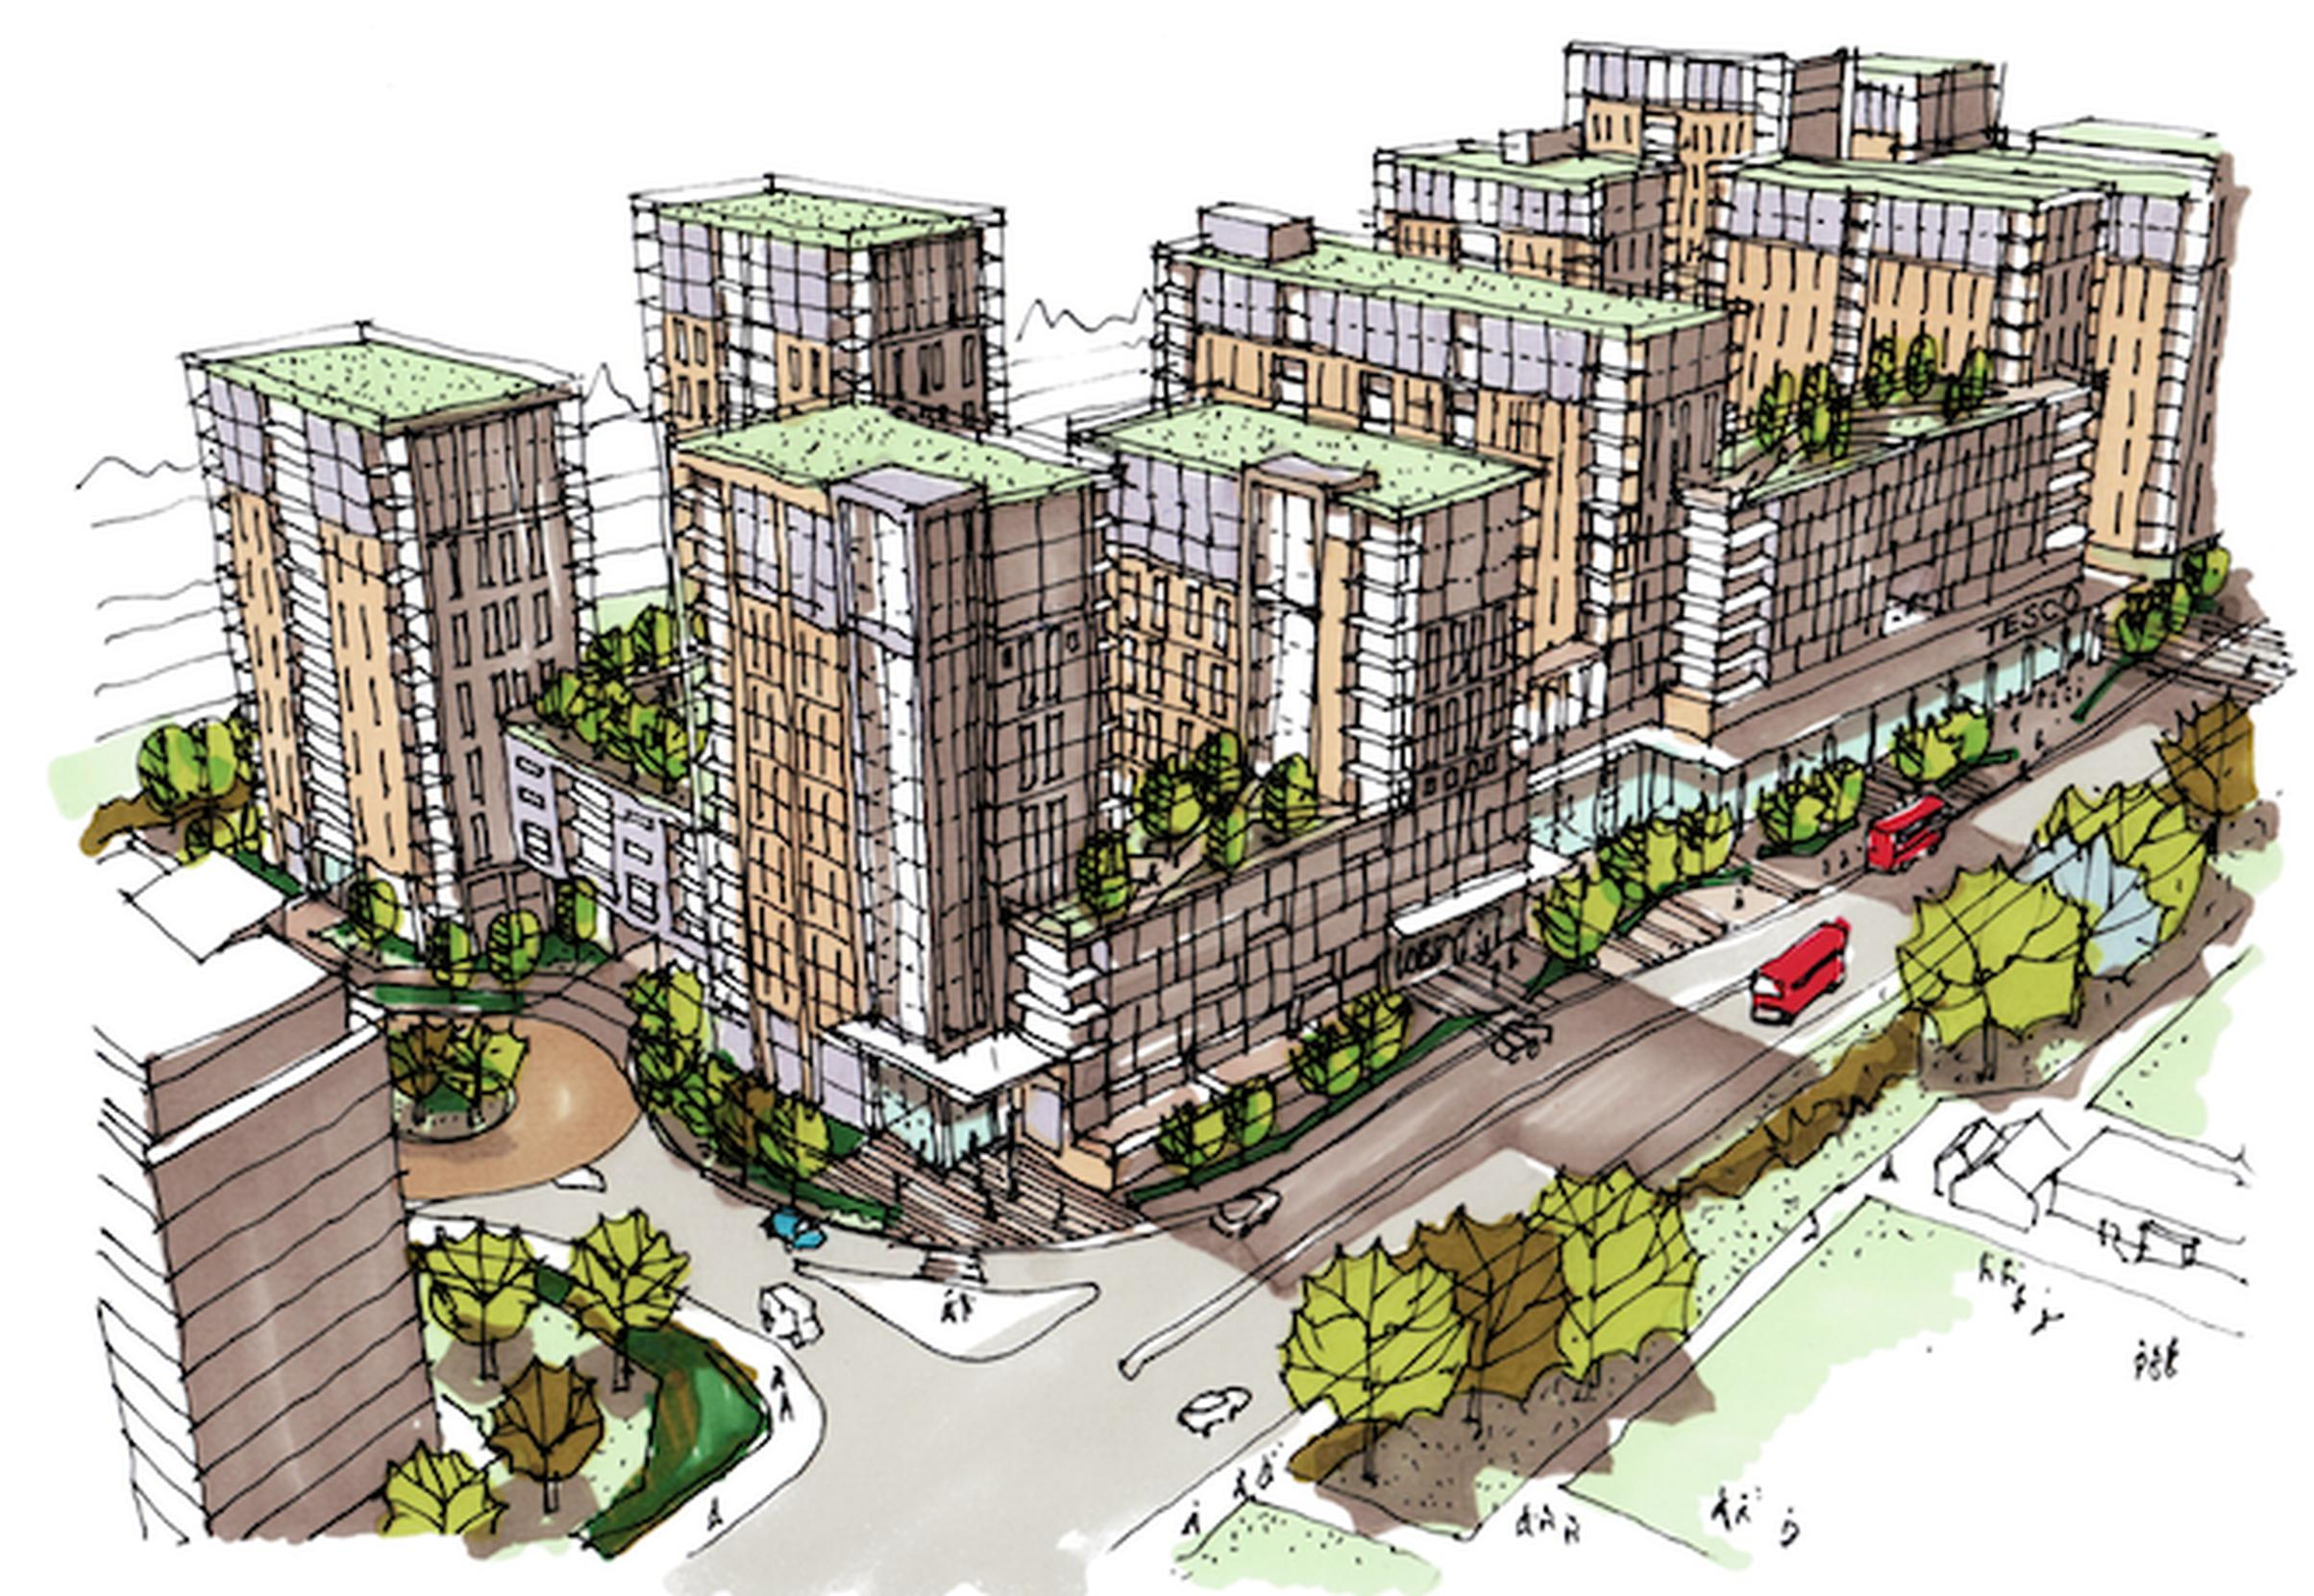 Weston Homes and Tesco`s proposal